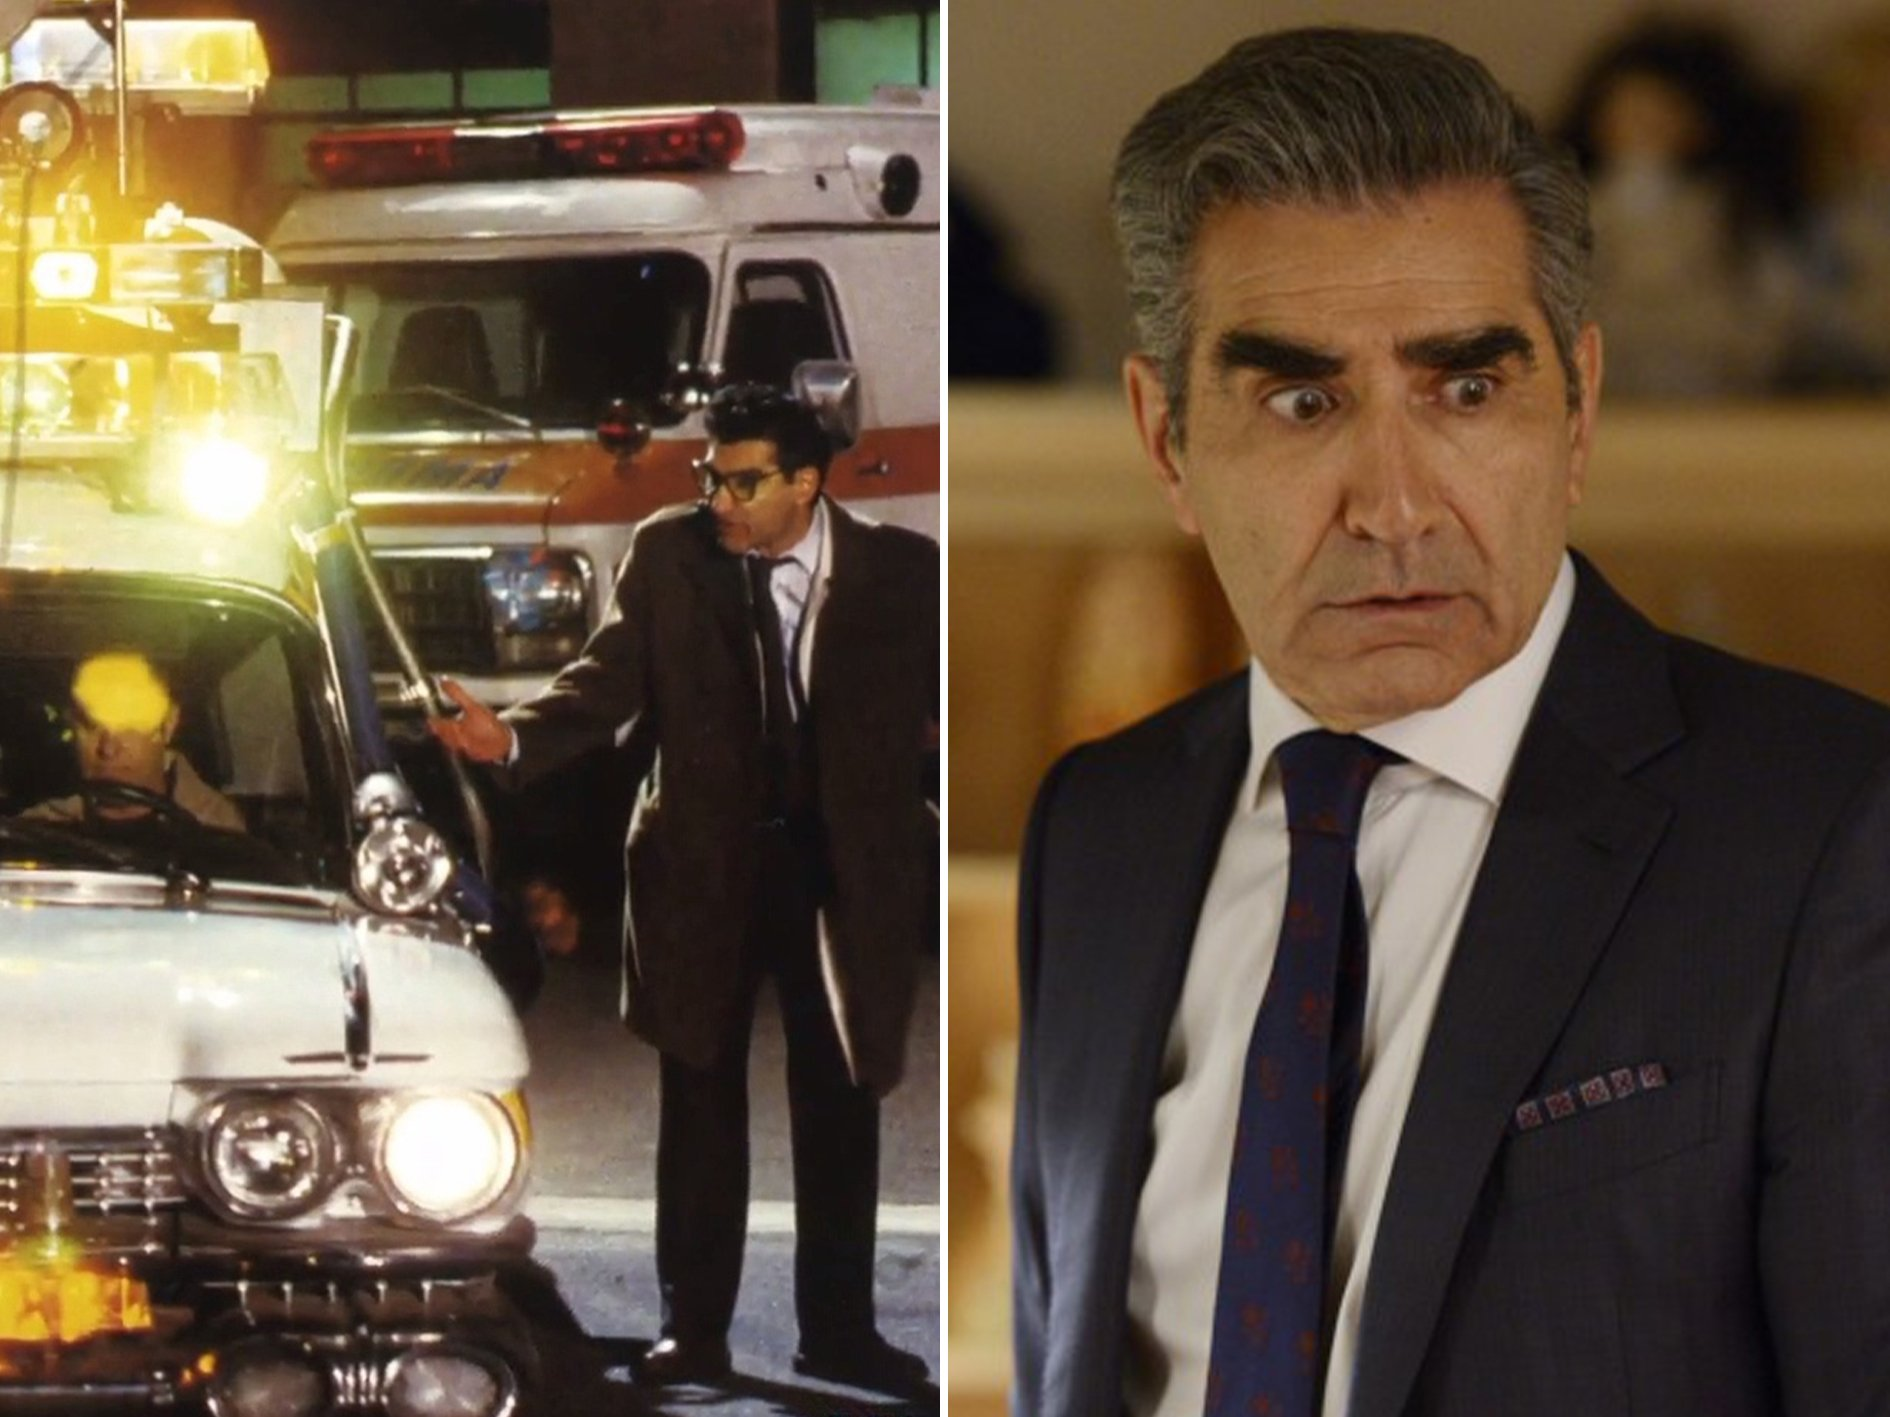 Eugene Levy Ghostbusters 2 Spooky Facts You Probably Never Knew About Ghostbusters II